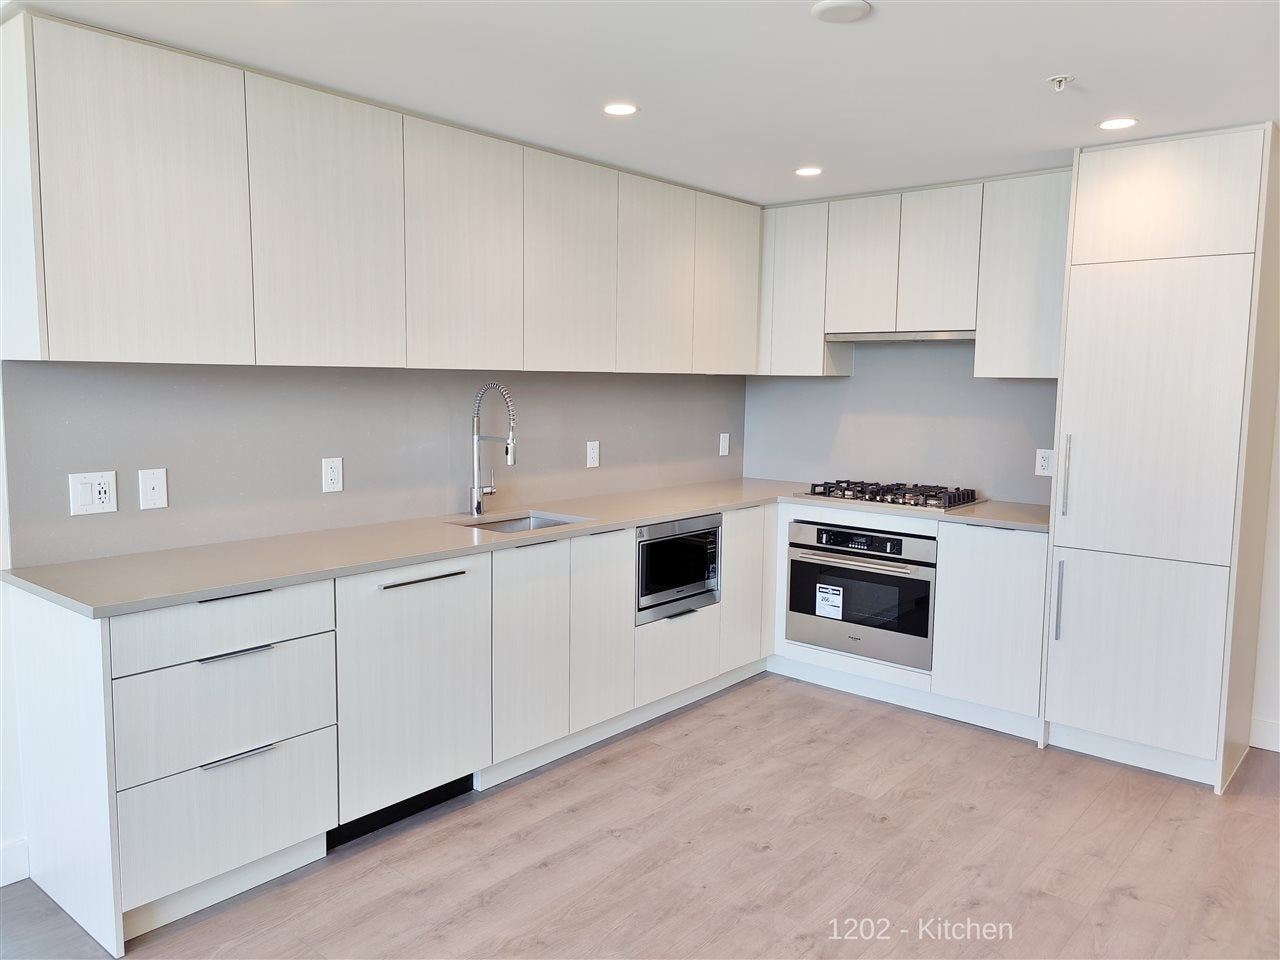 1202 4465 JUNEAU STREET - Brentwood Park Apartment/Condo for sale, 1 Bedroom (R2470011) - #10